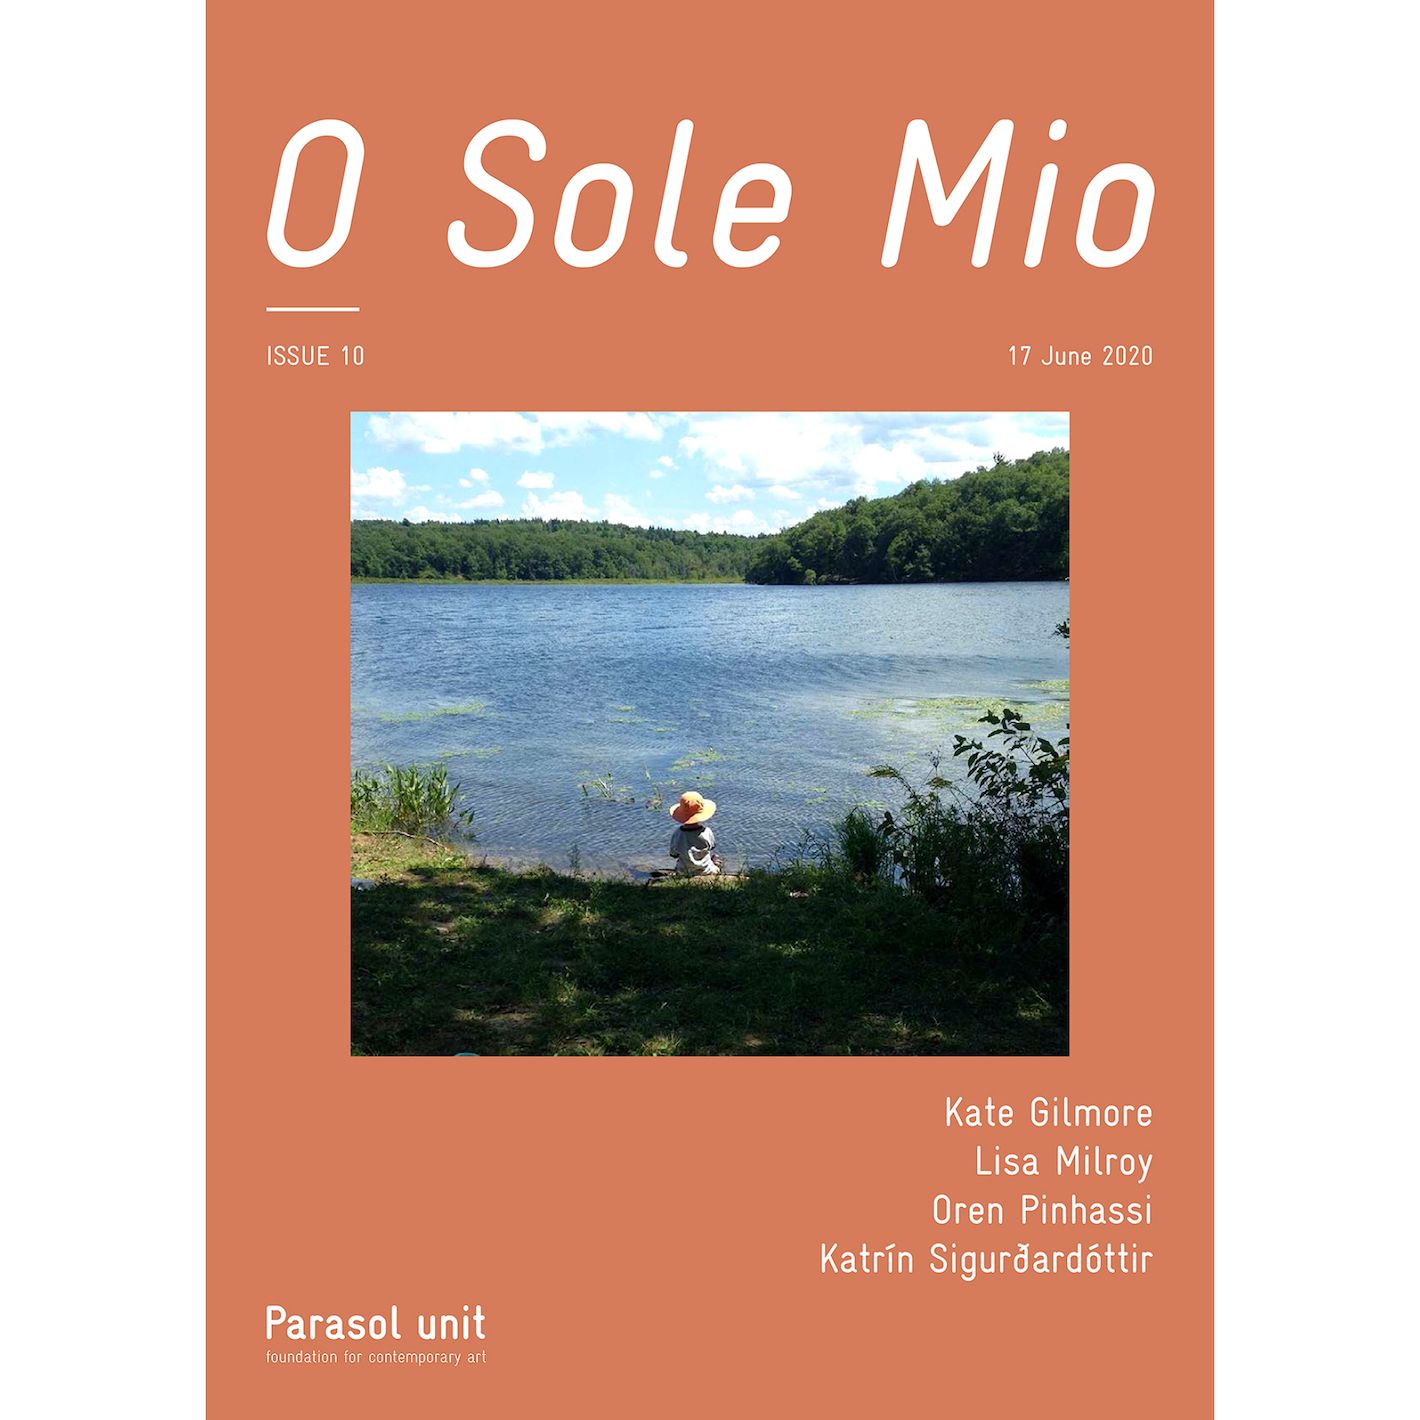 O Sole Mio - Parasol Unit